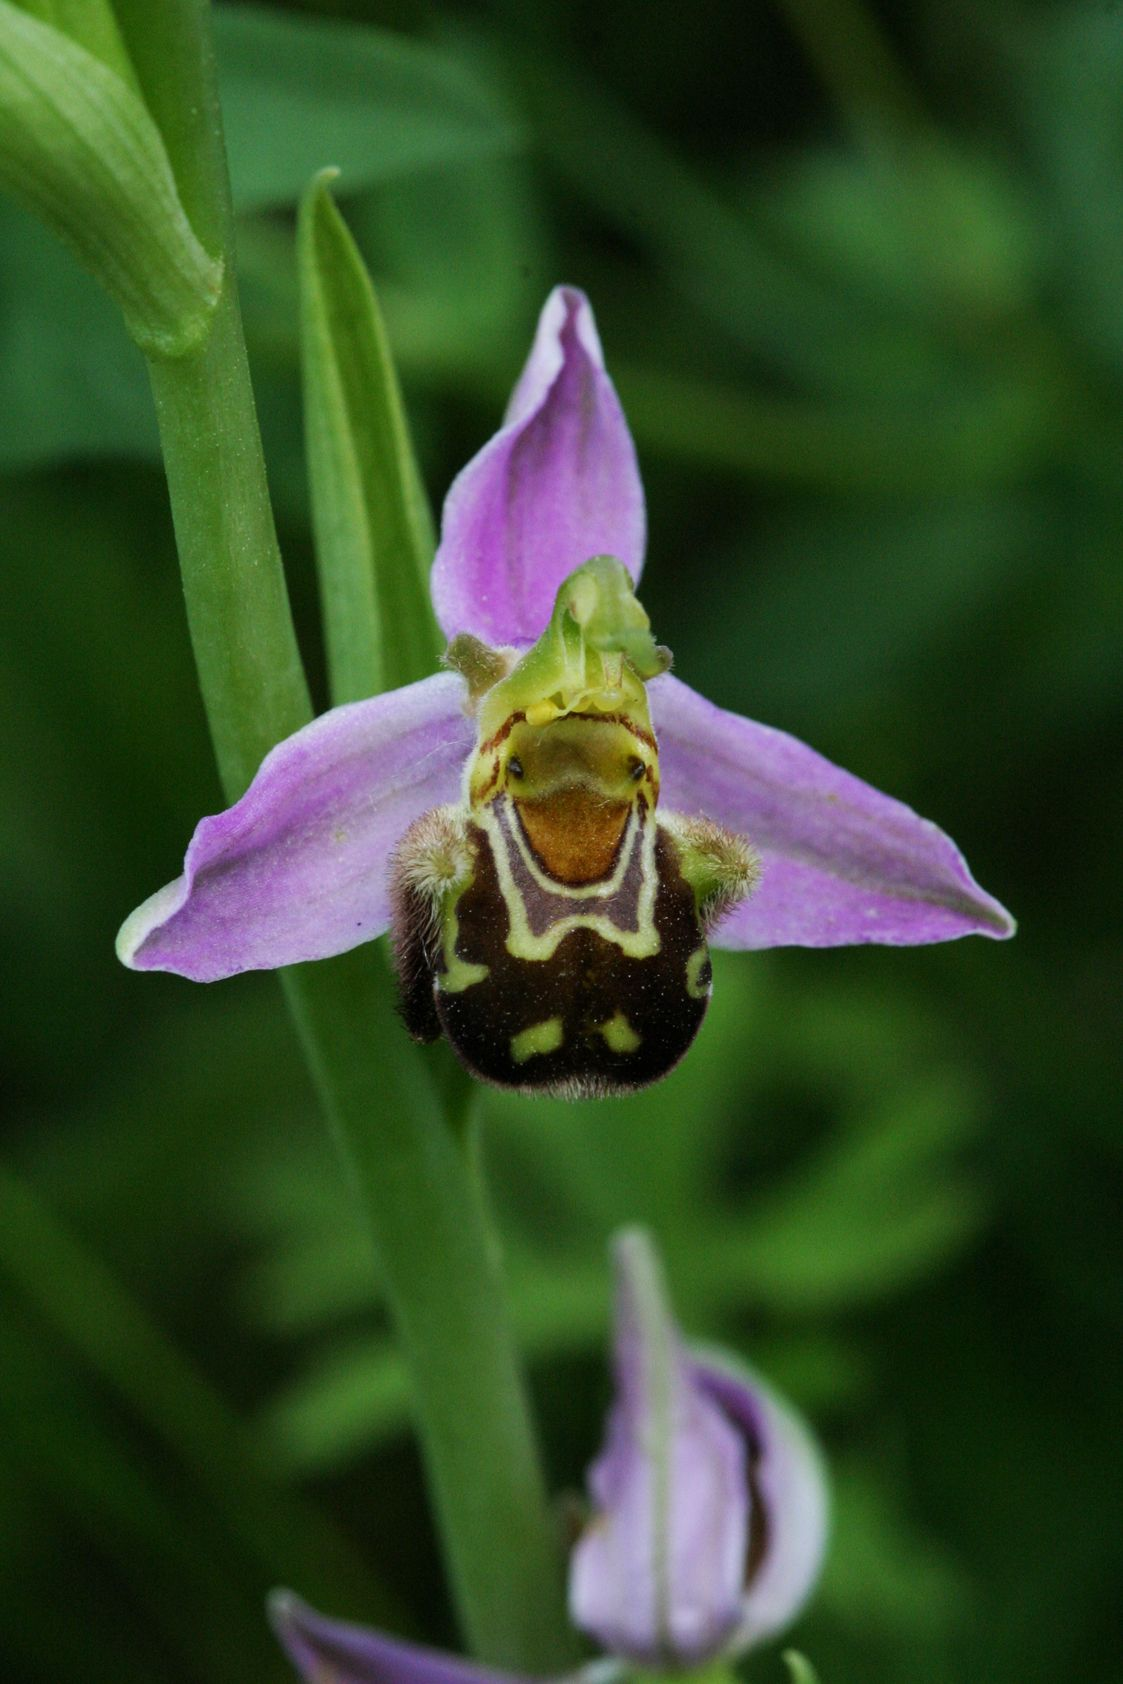 Rare flowers ophrys apifera or bee orchid the most widespread very rare and beautiful flower in the world in a rich moonlit garden flowers open beneath the eyes of entire nations terrified dhlflorist Images